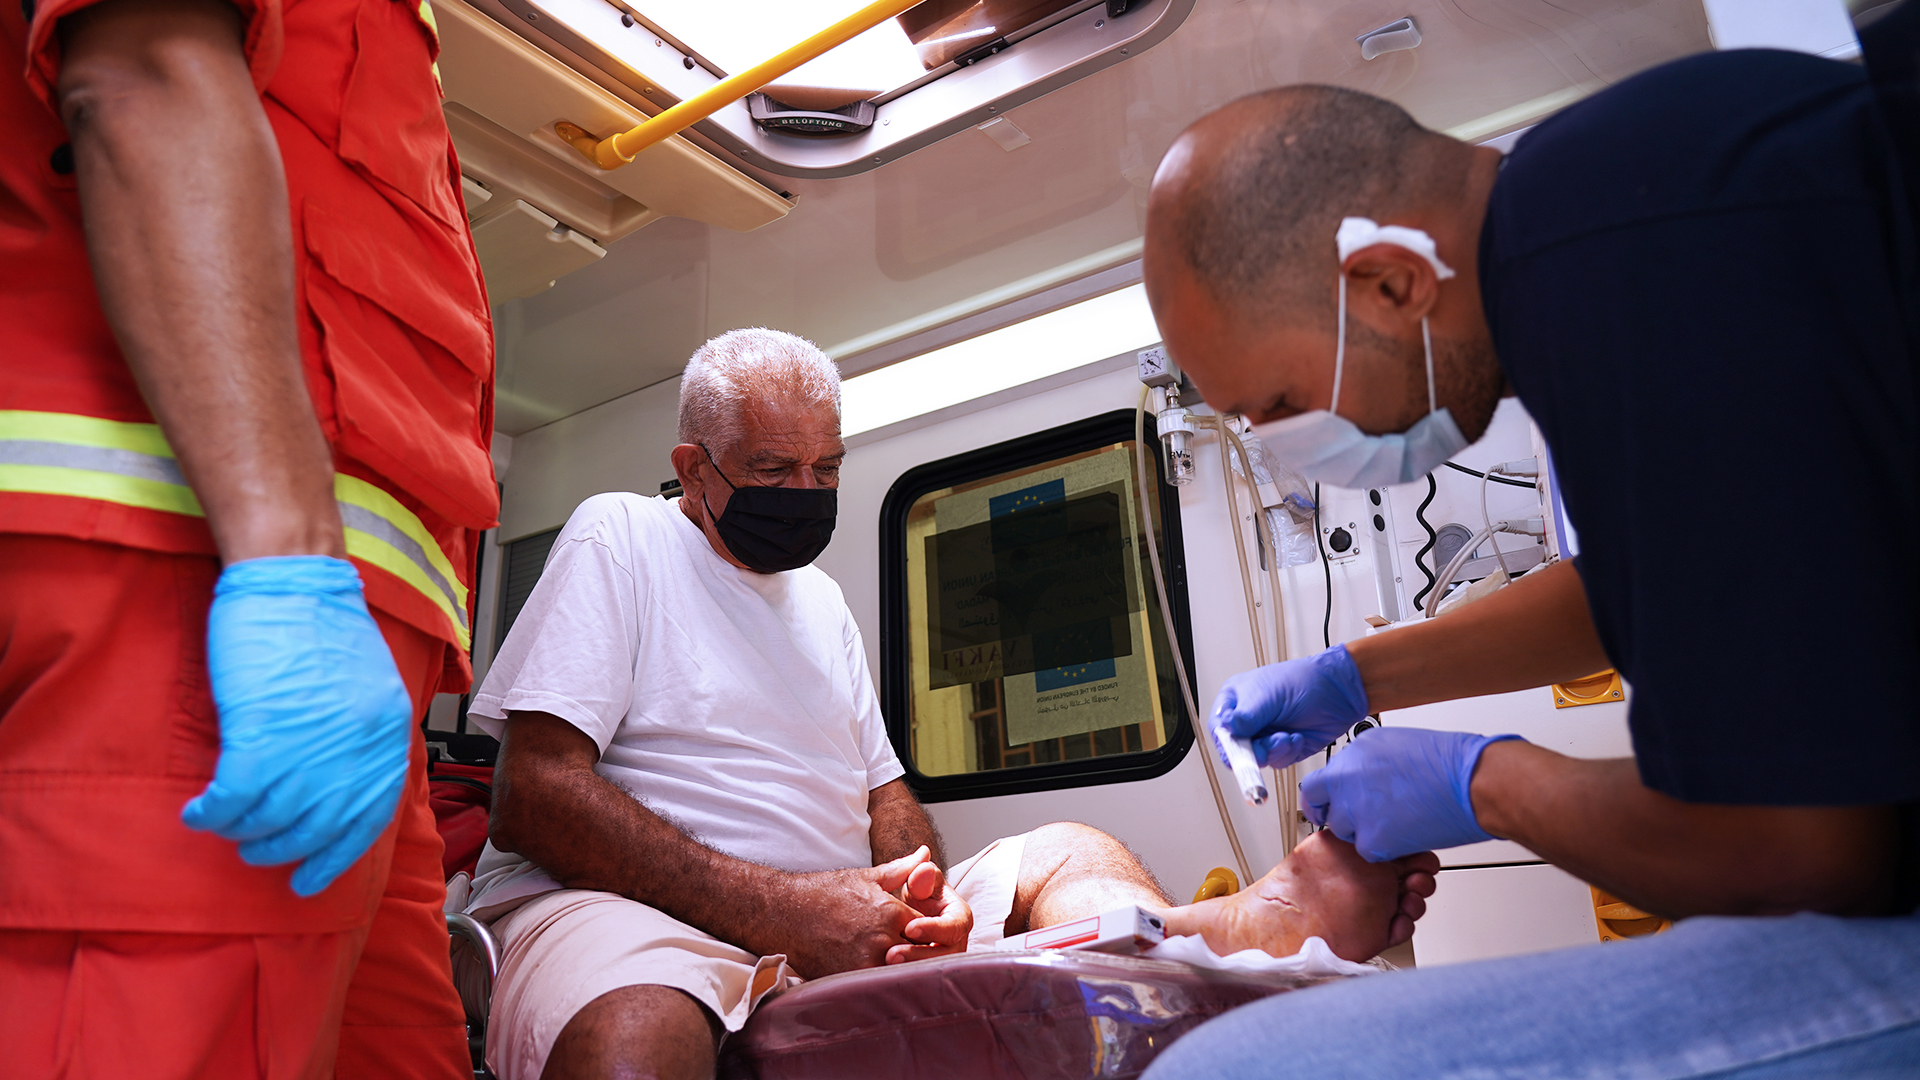 On August 9, Rabih, a health officer and a registered nurse who usually works for International Medical Corps in the south of Lebanon, was deployed to Beirut to help with the emergency response in the wake of the port explosion. Here, he treats an elderly patient at the Mobile Medical Unit deployed to the Karm El Zaytoun neighborhood.